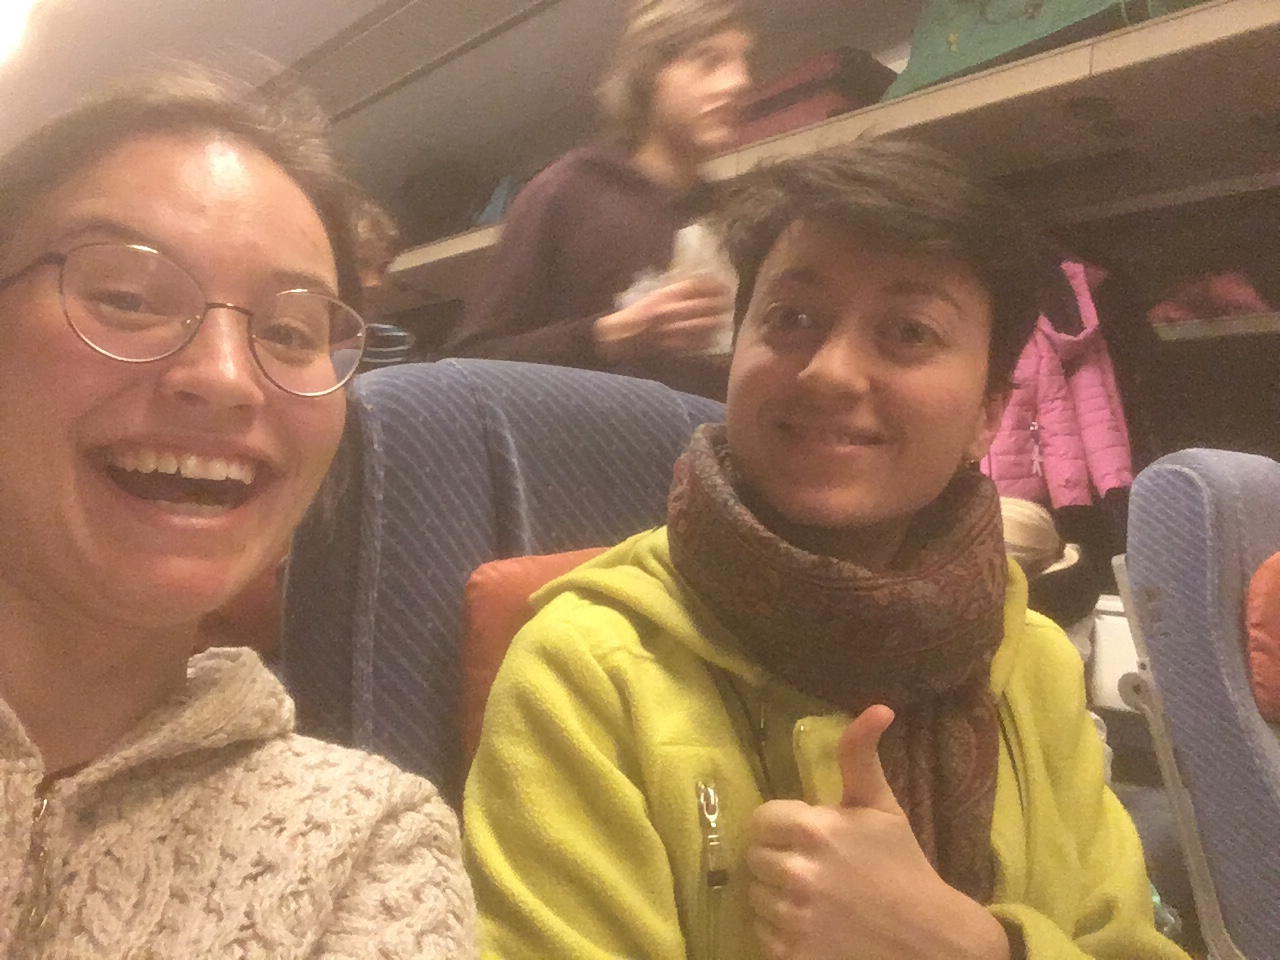 Claire and Aline smile with thumbs up, sitting in two seats on a busy train